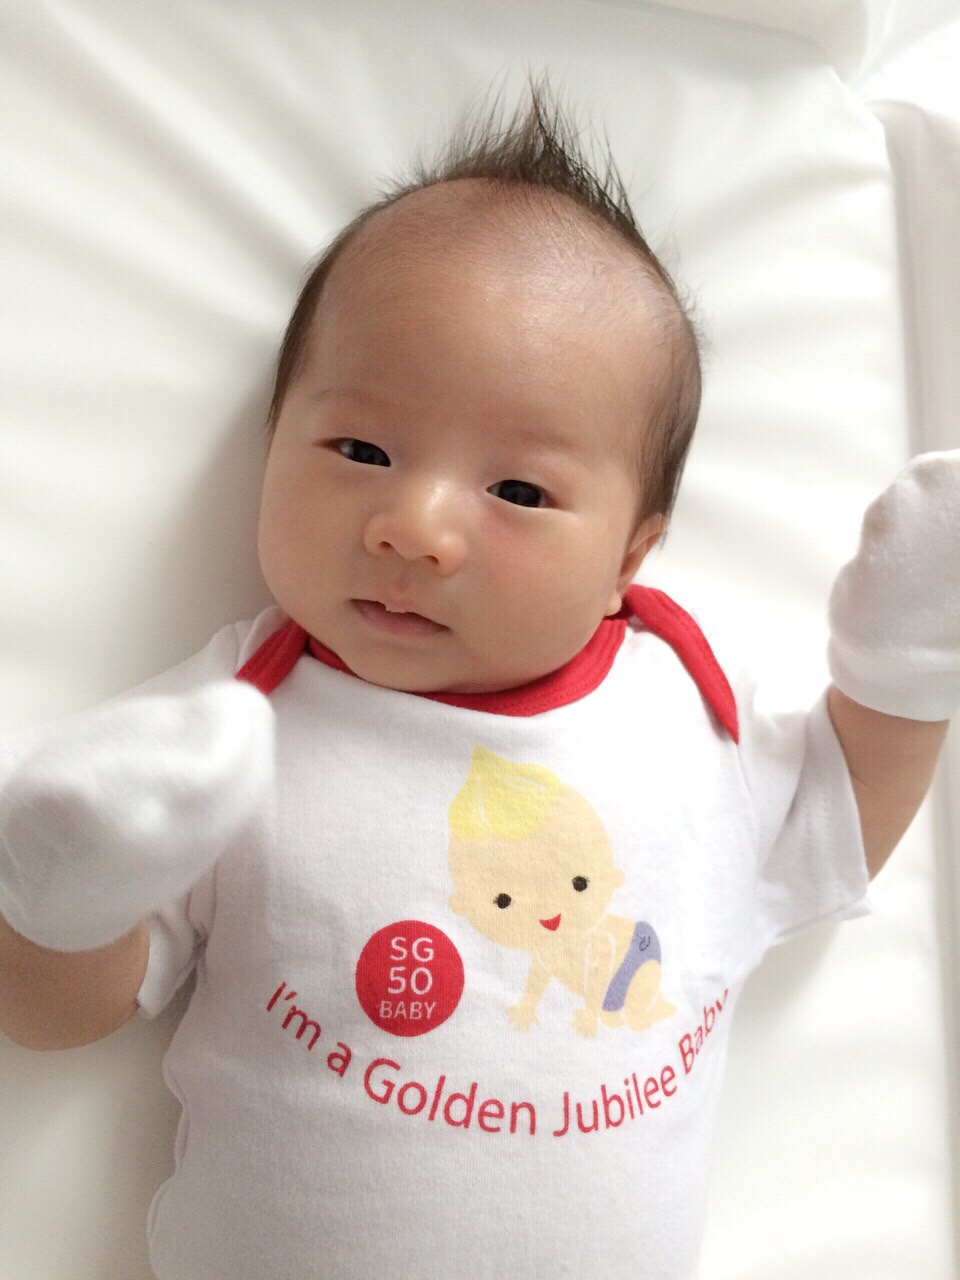 Lil X at 2months old! Dont you think he looks like the SG50 baby? Must be the hair... Haha!